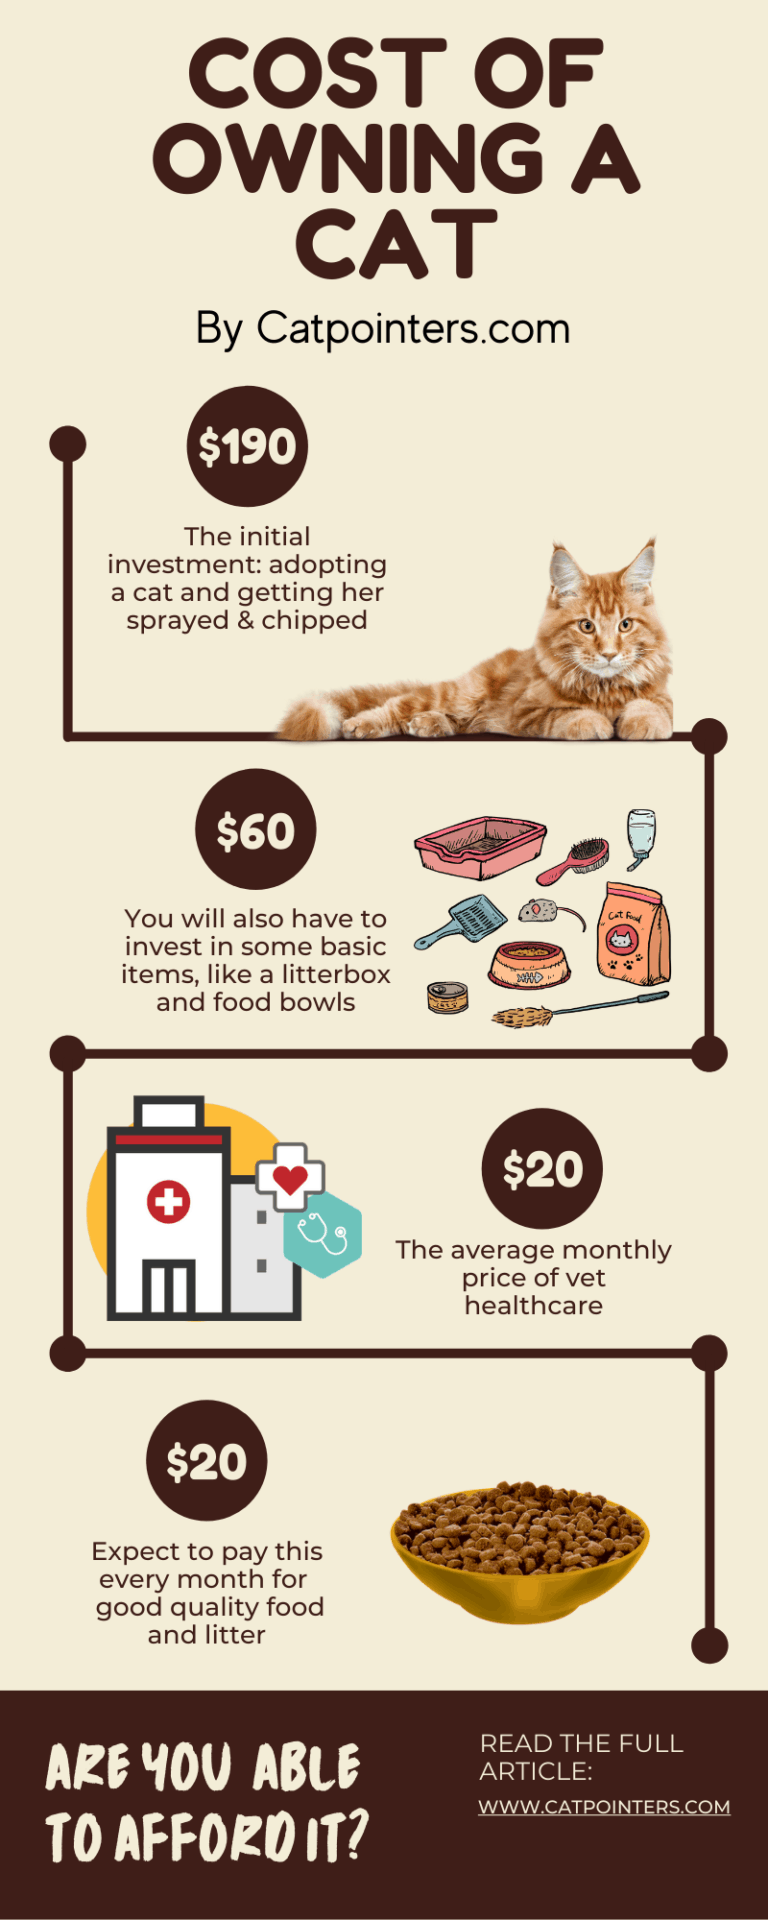 How much does it cost to own a cat